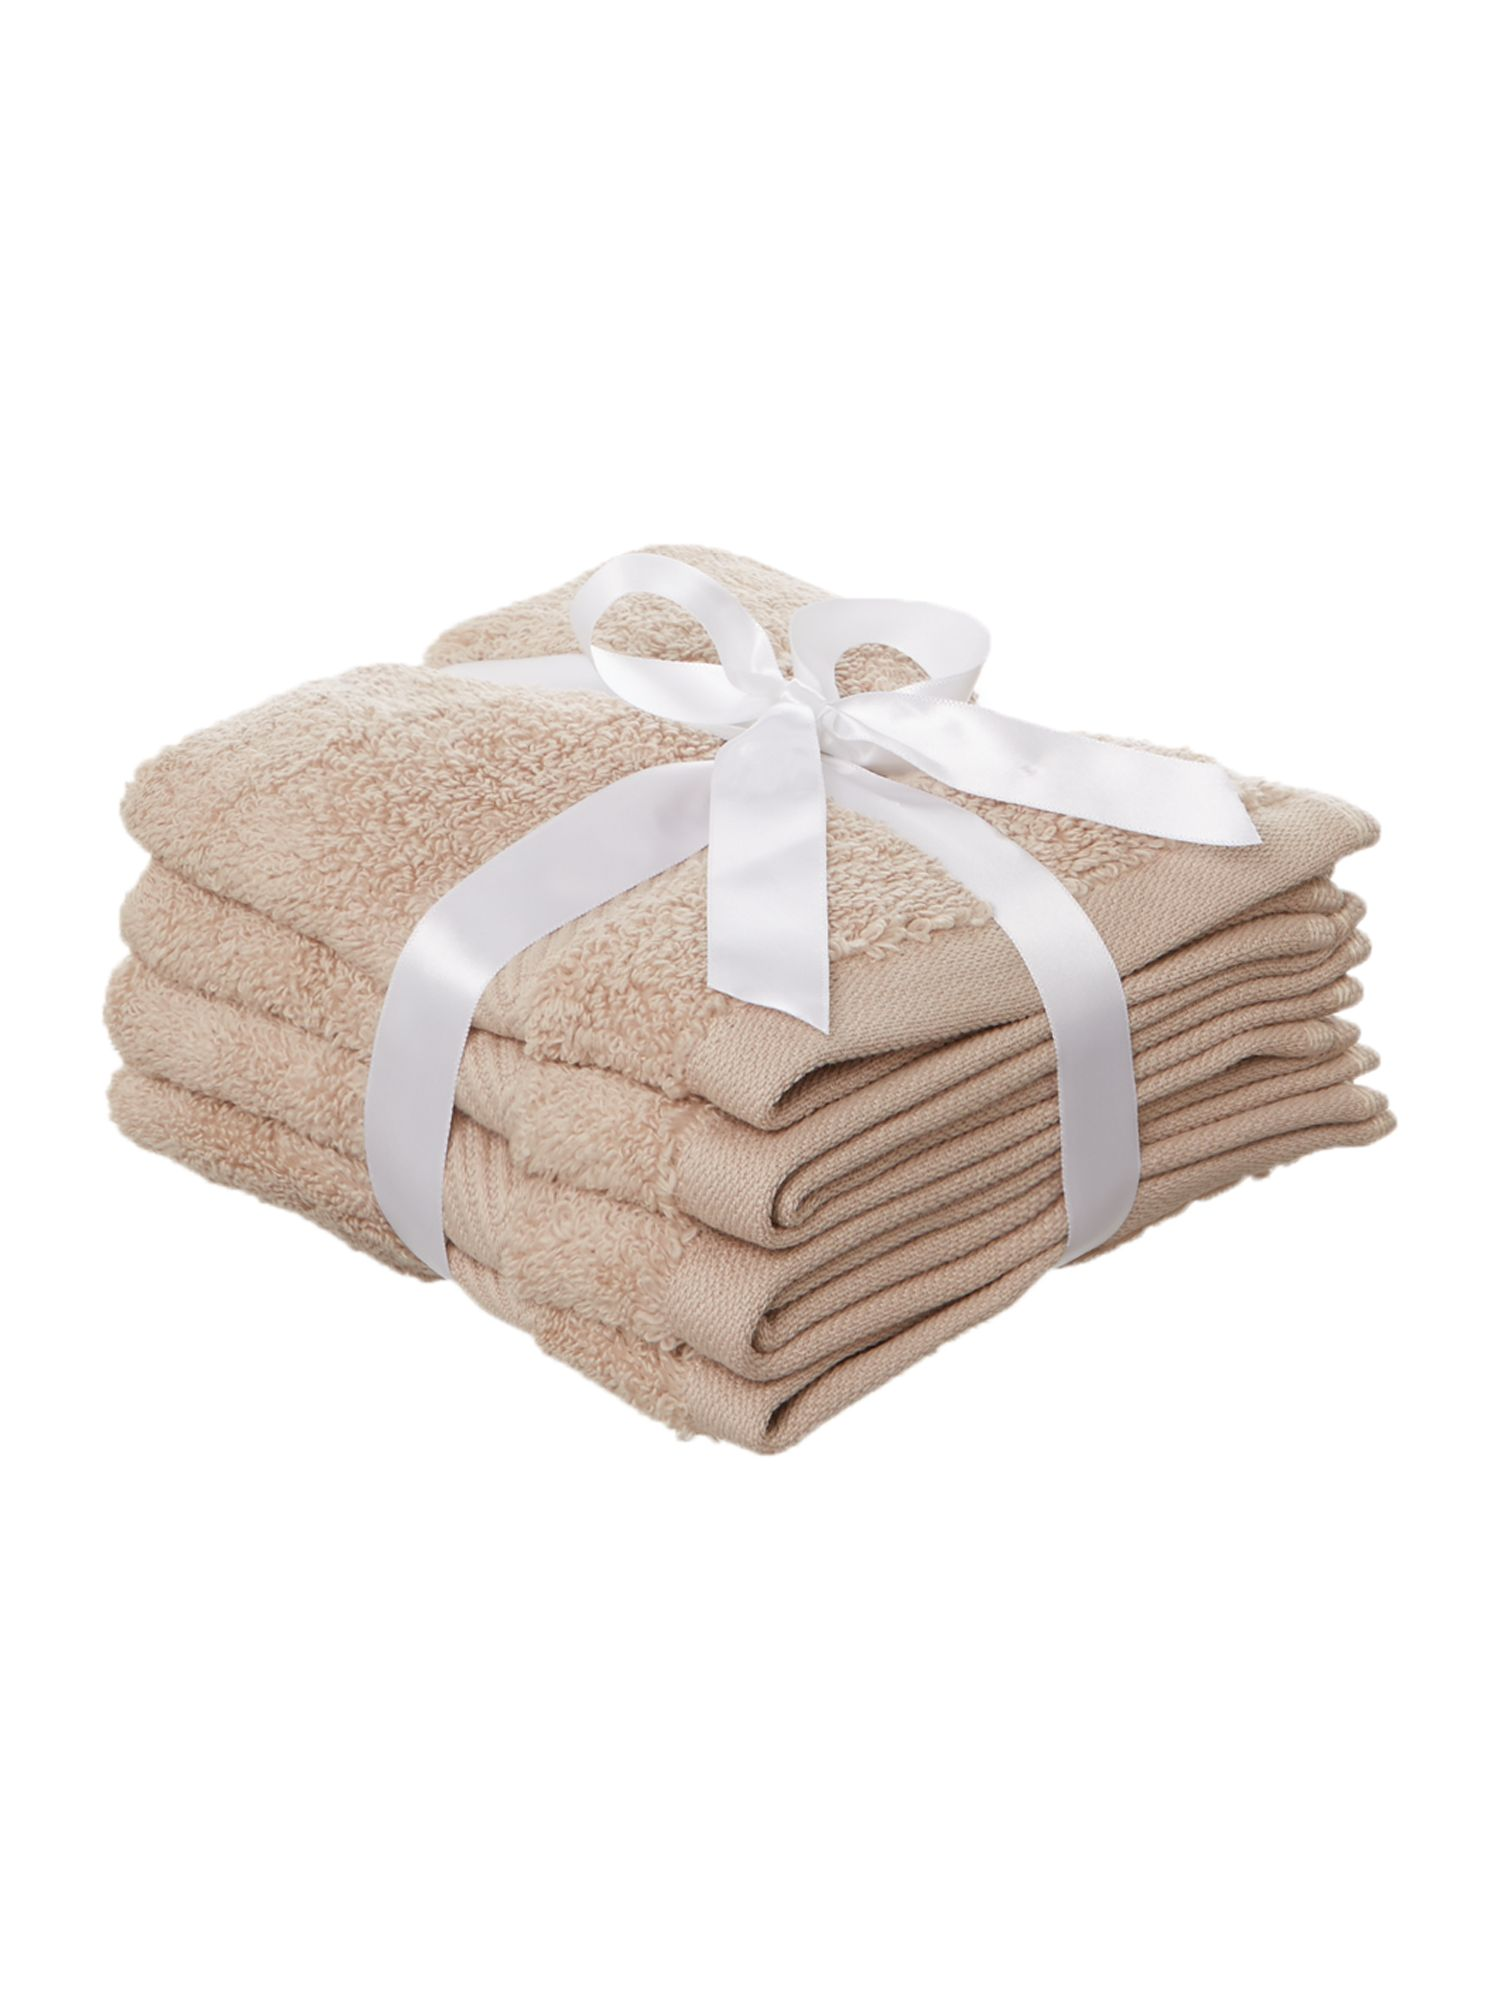 Zero Twist face cloth set of 4 in mushroom